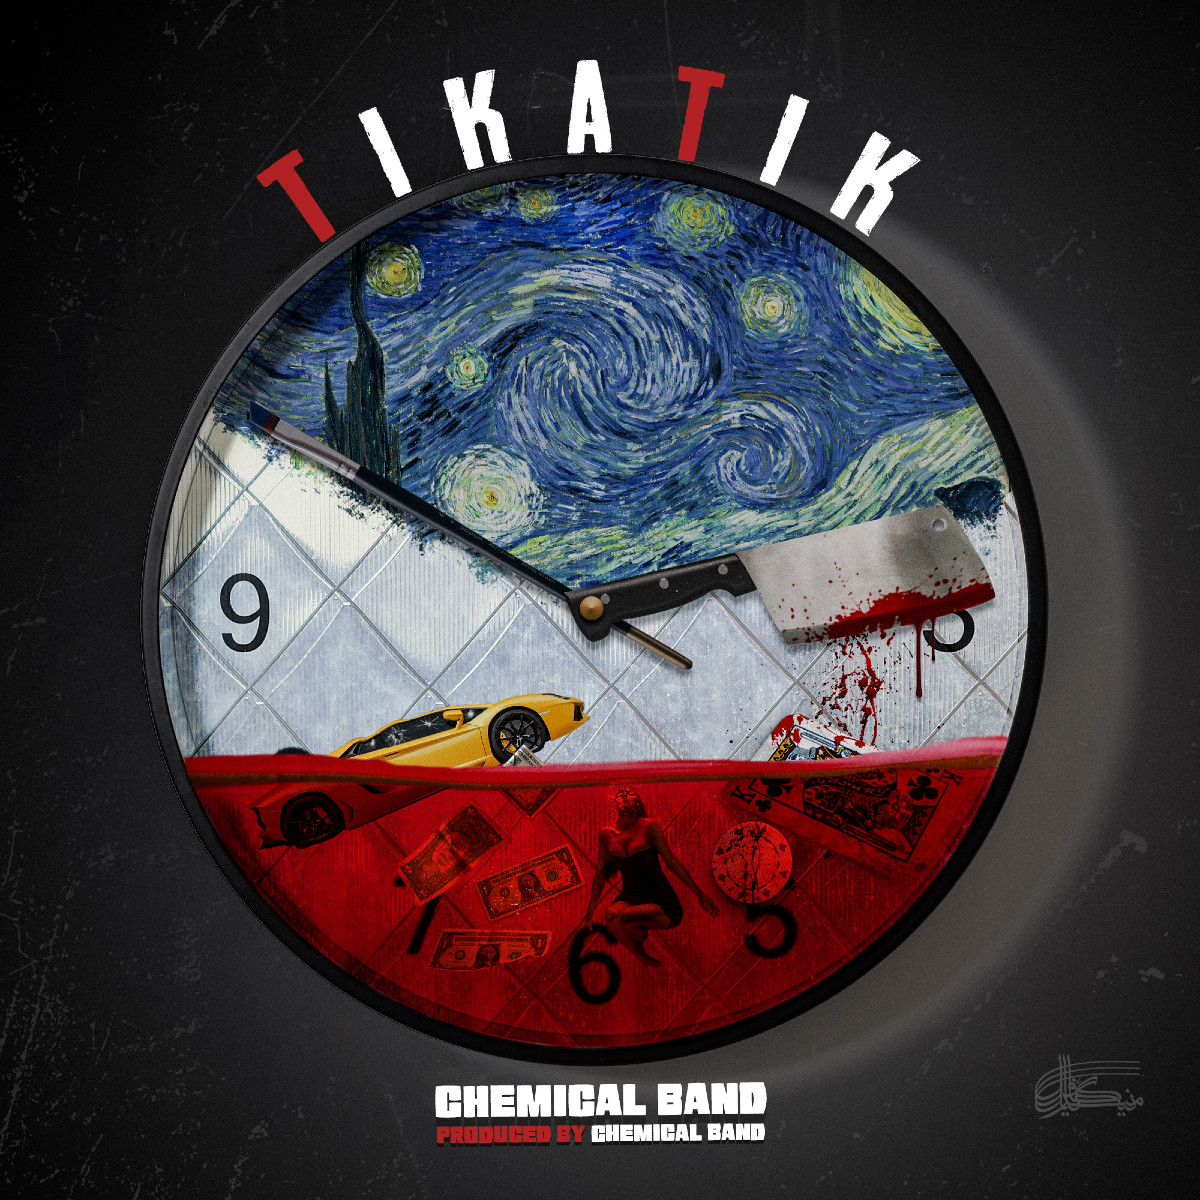 Chemical Band - TikaTik